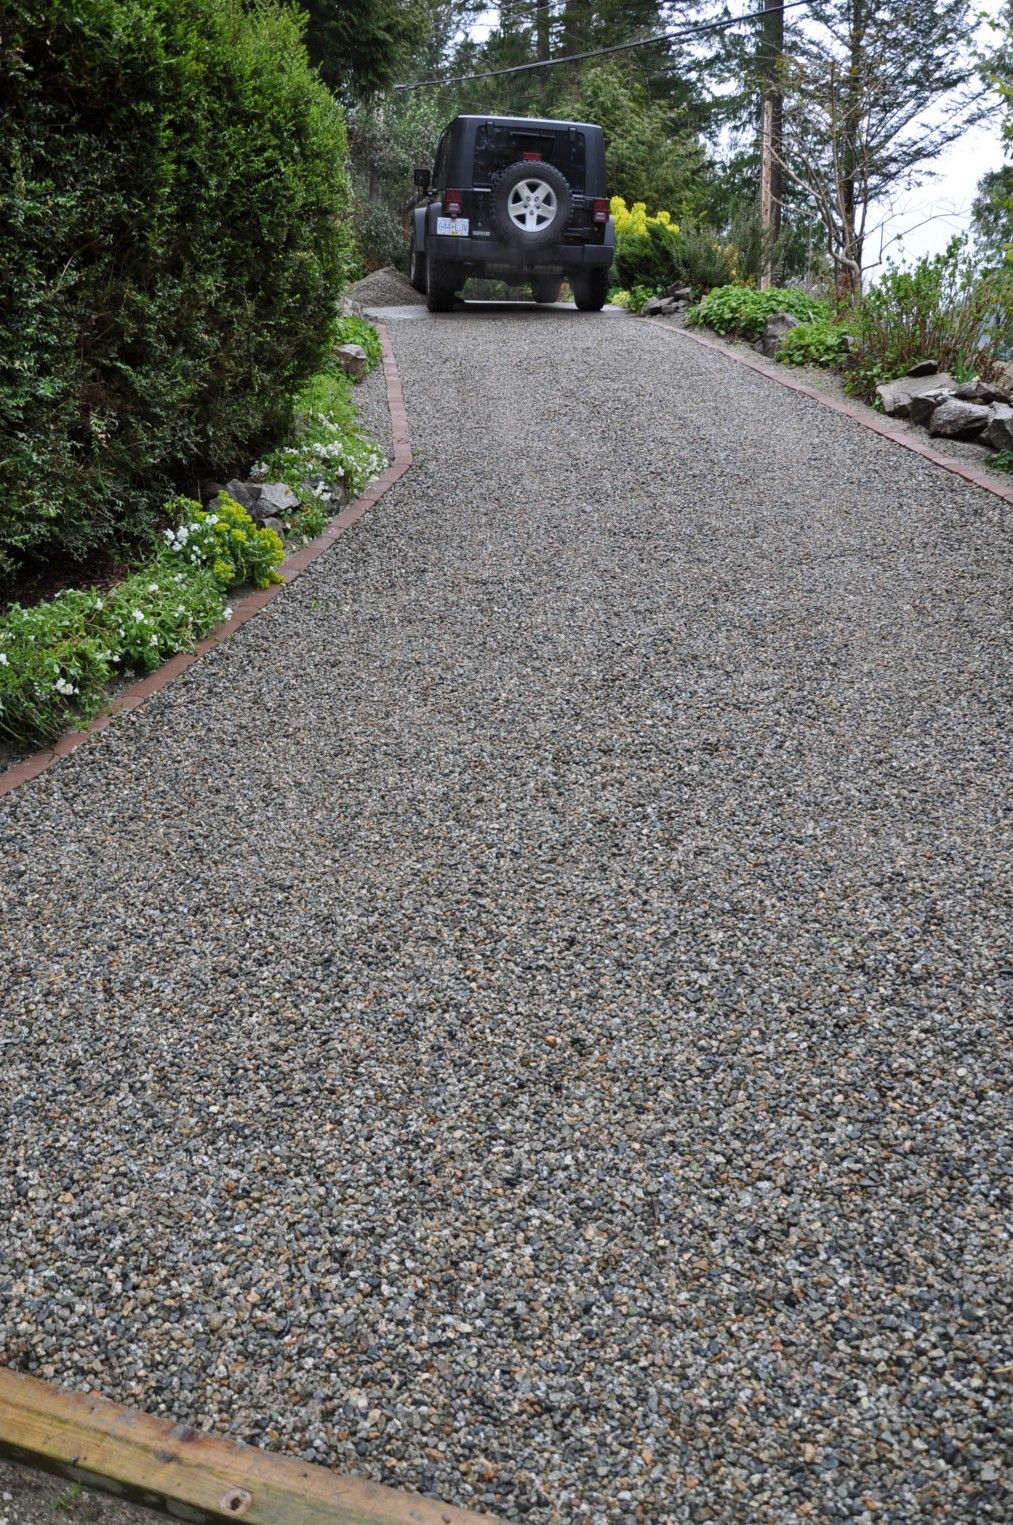 Seymour gravel driveway google search rk pin seymour gravel driveway google search more solutioingenieria Image collections